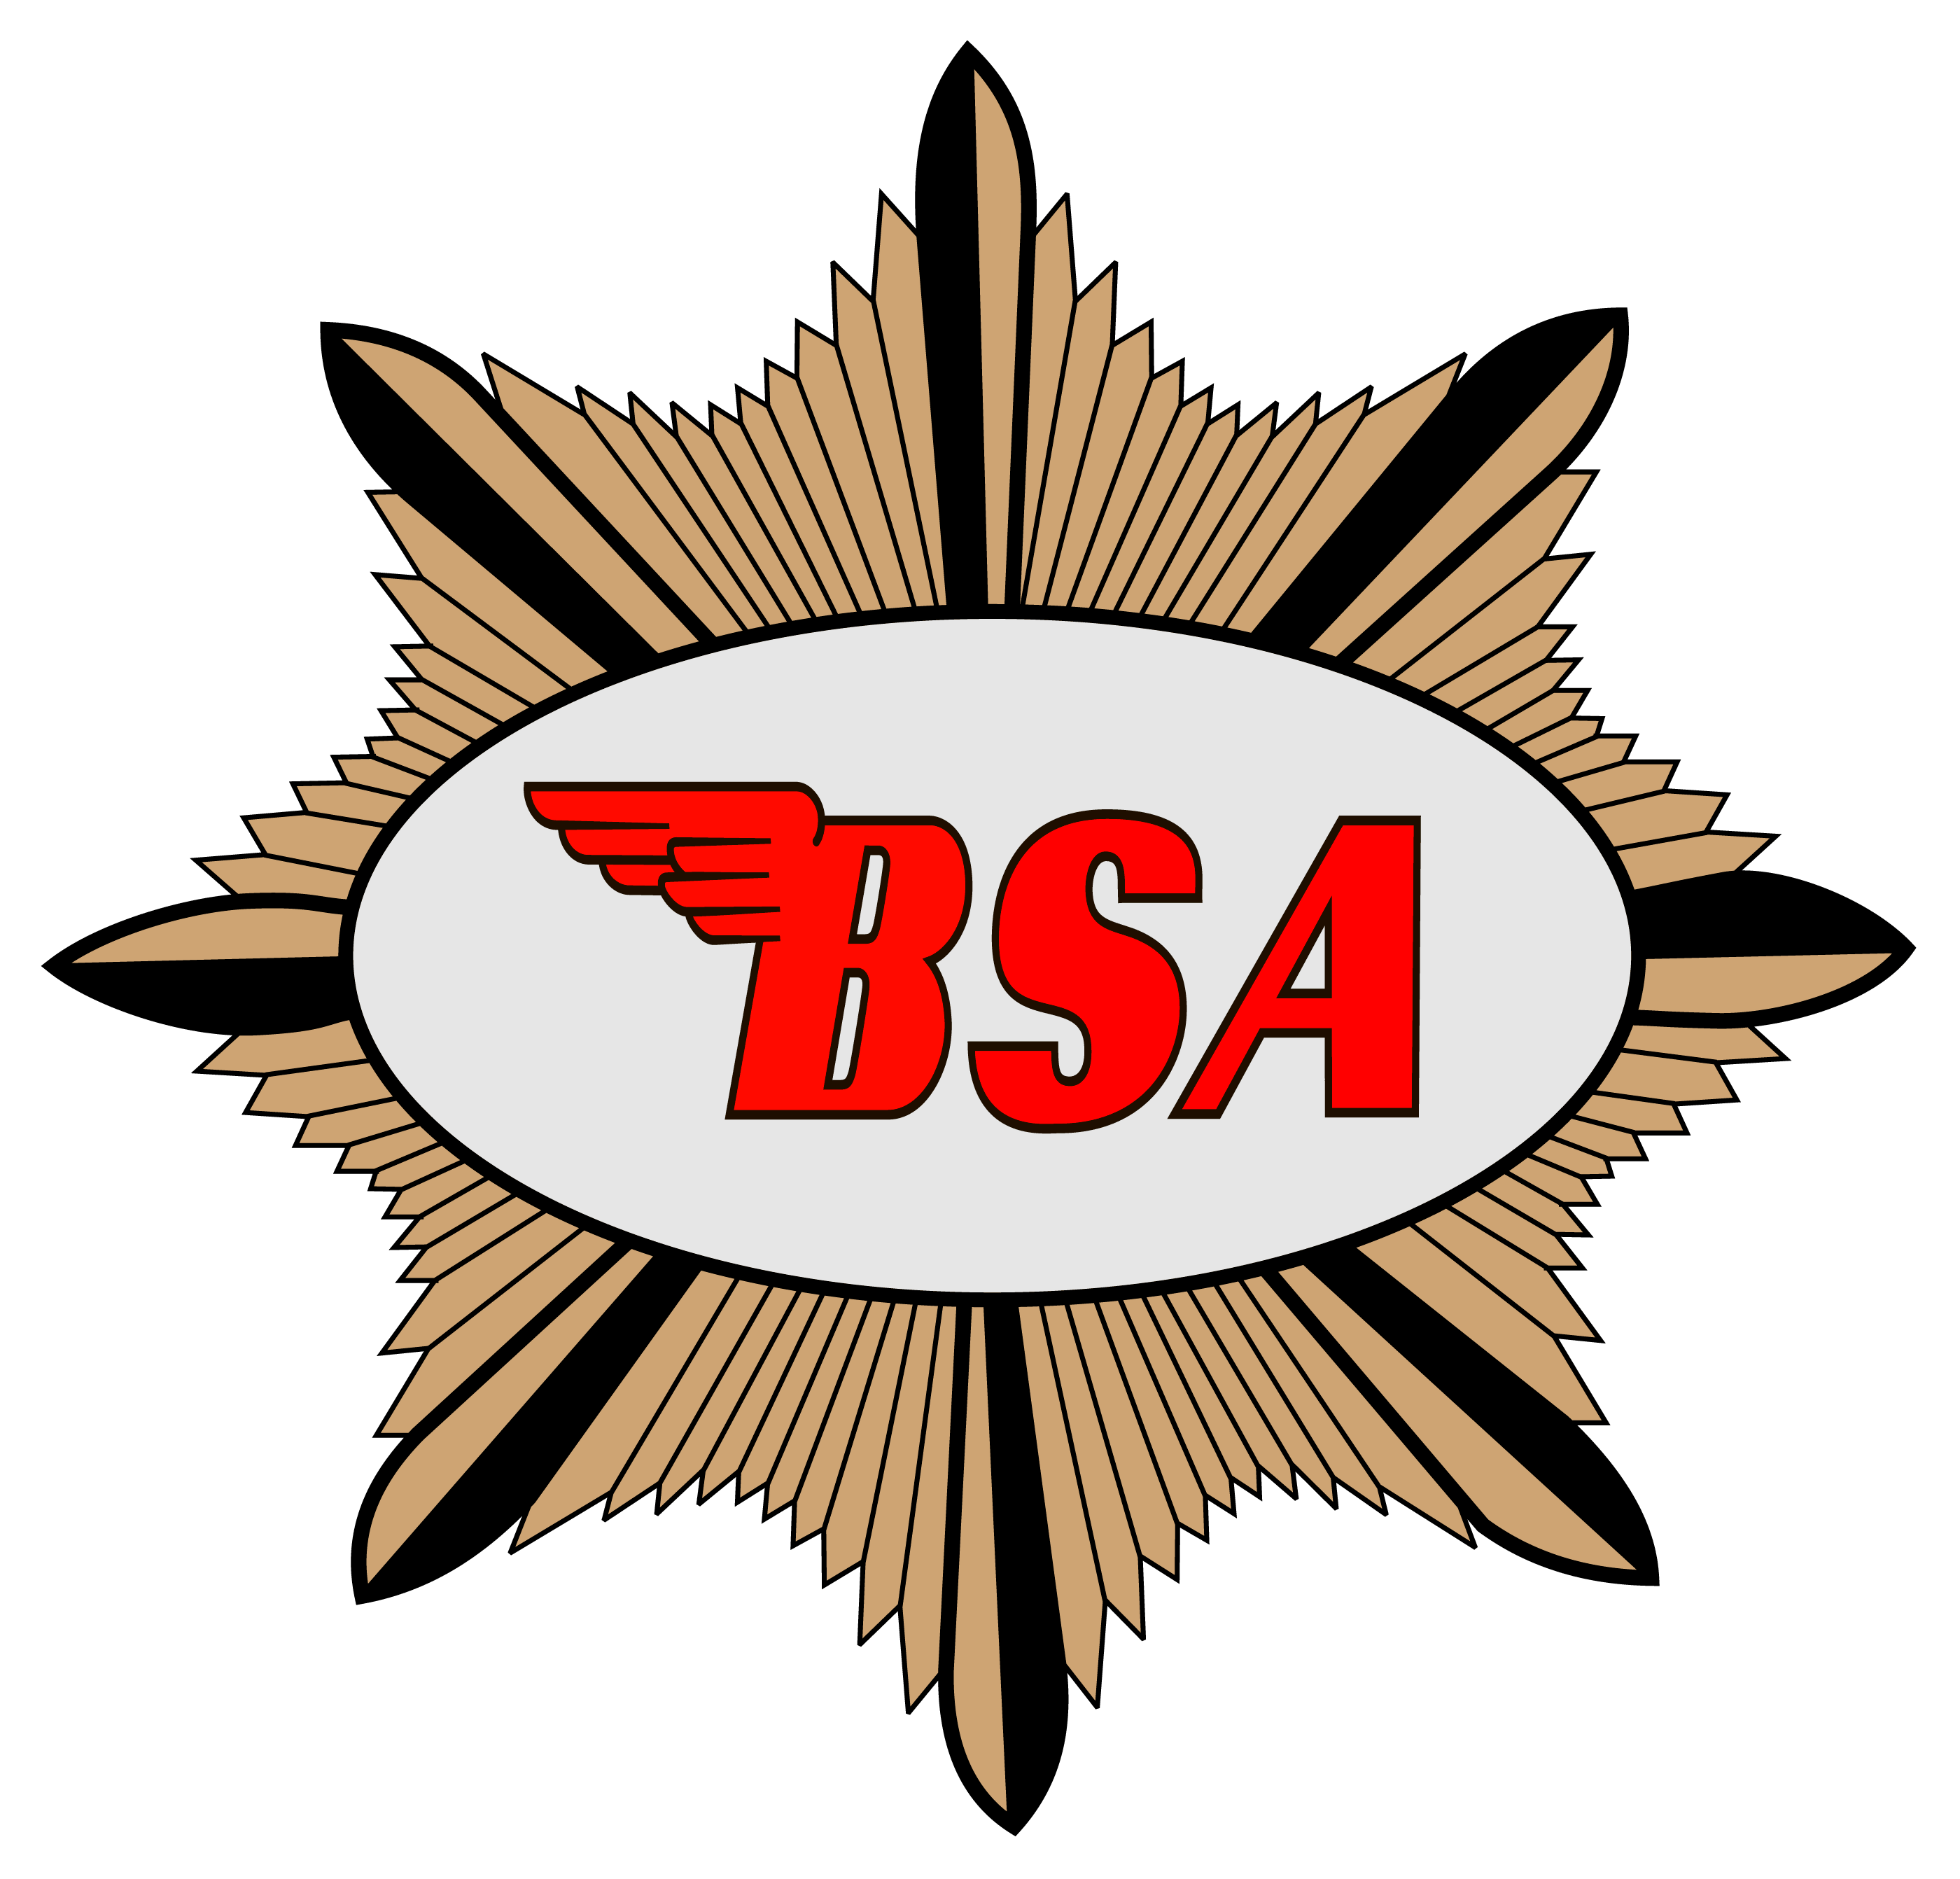 Bsa motorcycle logo clipart graphic library library BSA motorcycle logo history and Meaning, bike emblem graphic library library